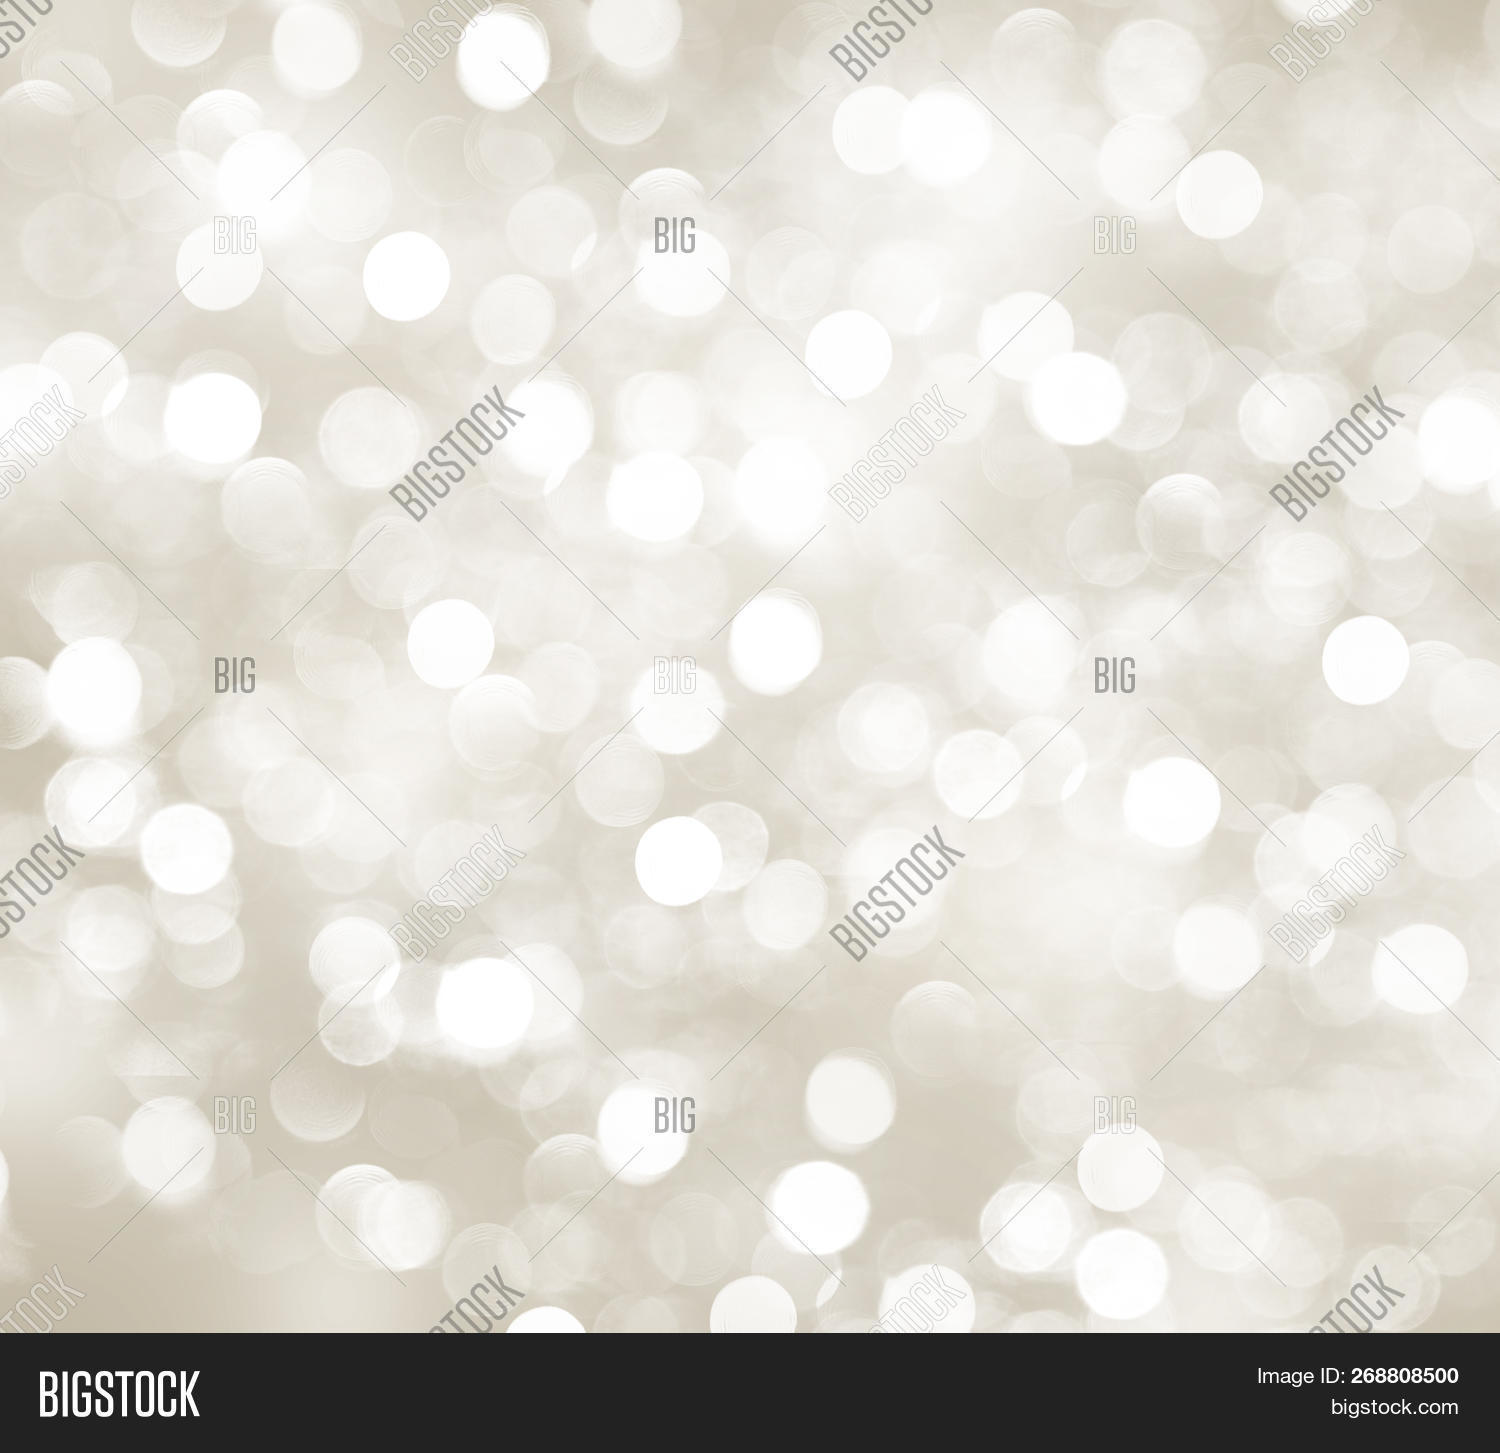 Abstract,Christmas,Silver,background,beautiful,beige,blurred,bokeh,bright,burn,circles,decoration,decorative,defocused,design,festive,flaming,glitter,gray,holiday,light,magic,pattern,shiny,sparkle,spot,texture,white